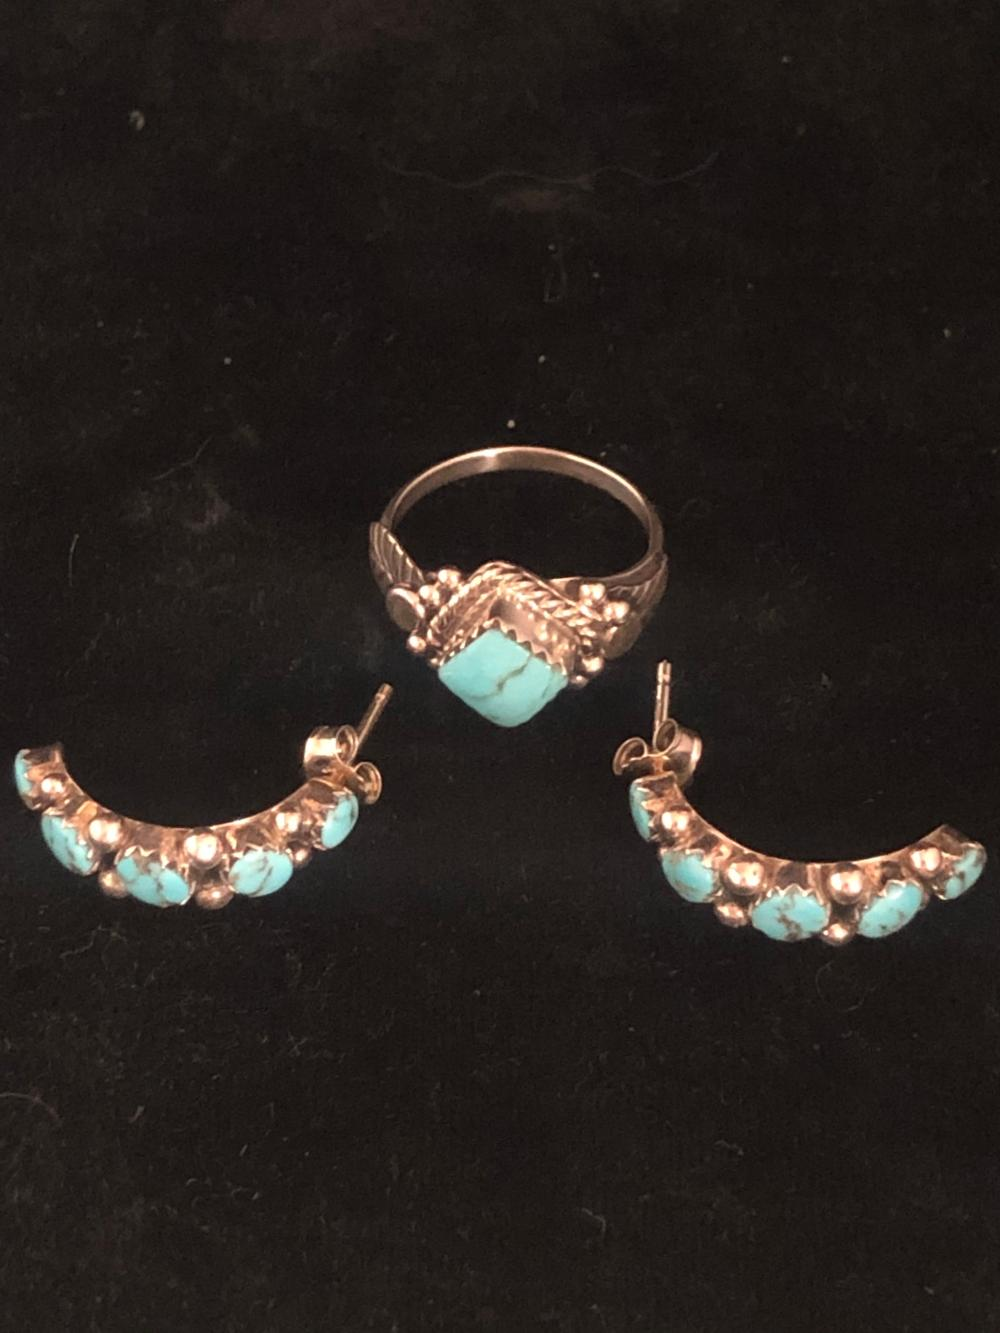 Turquoise ring and earrings 'set'